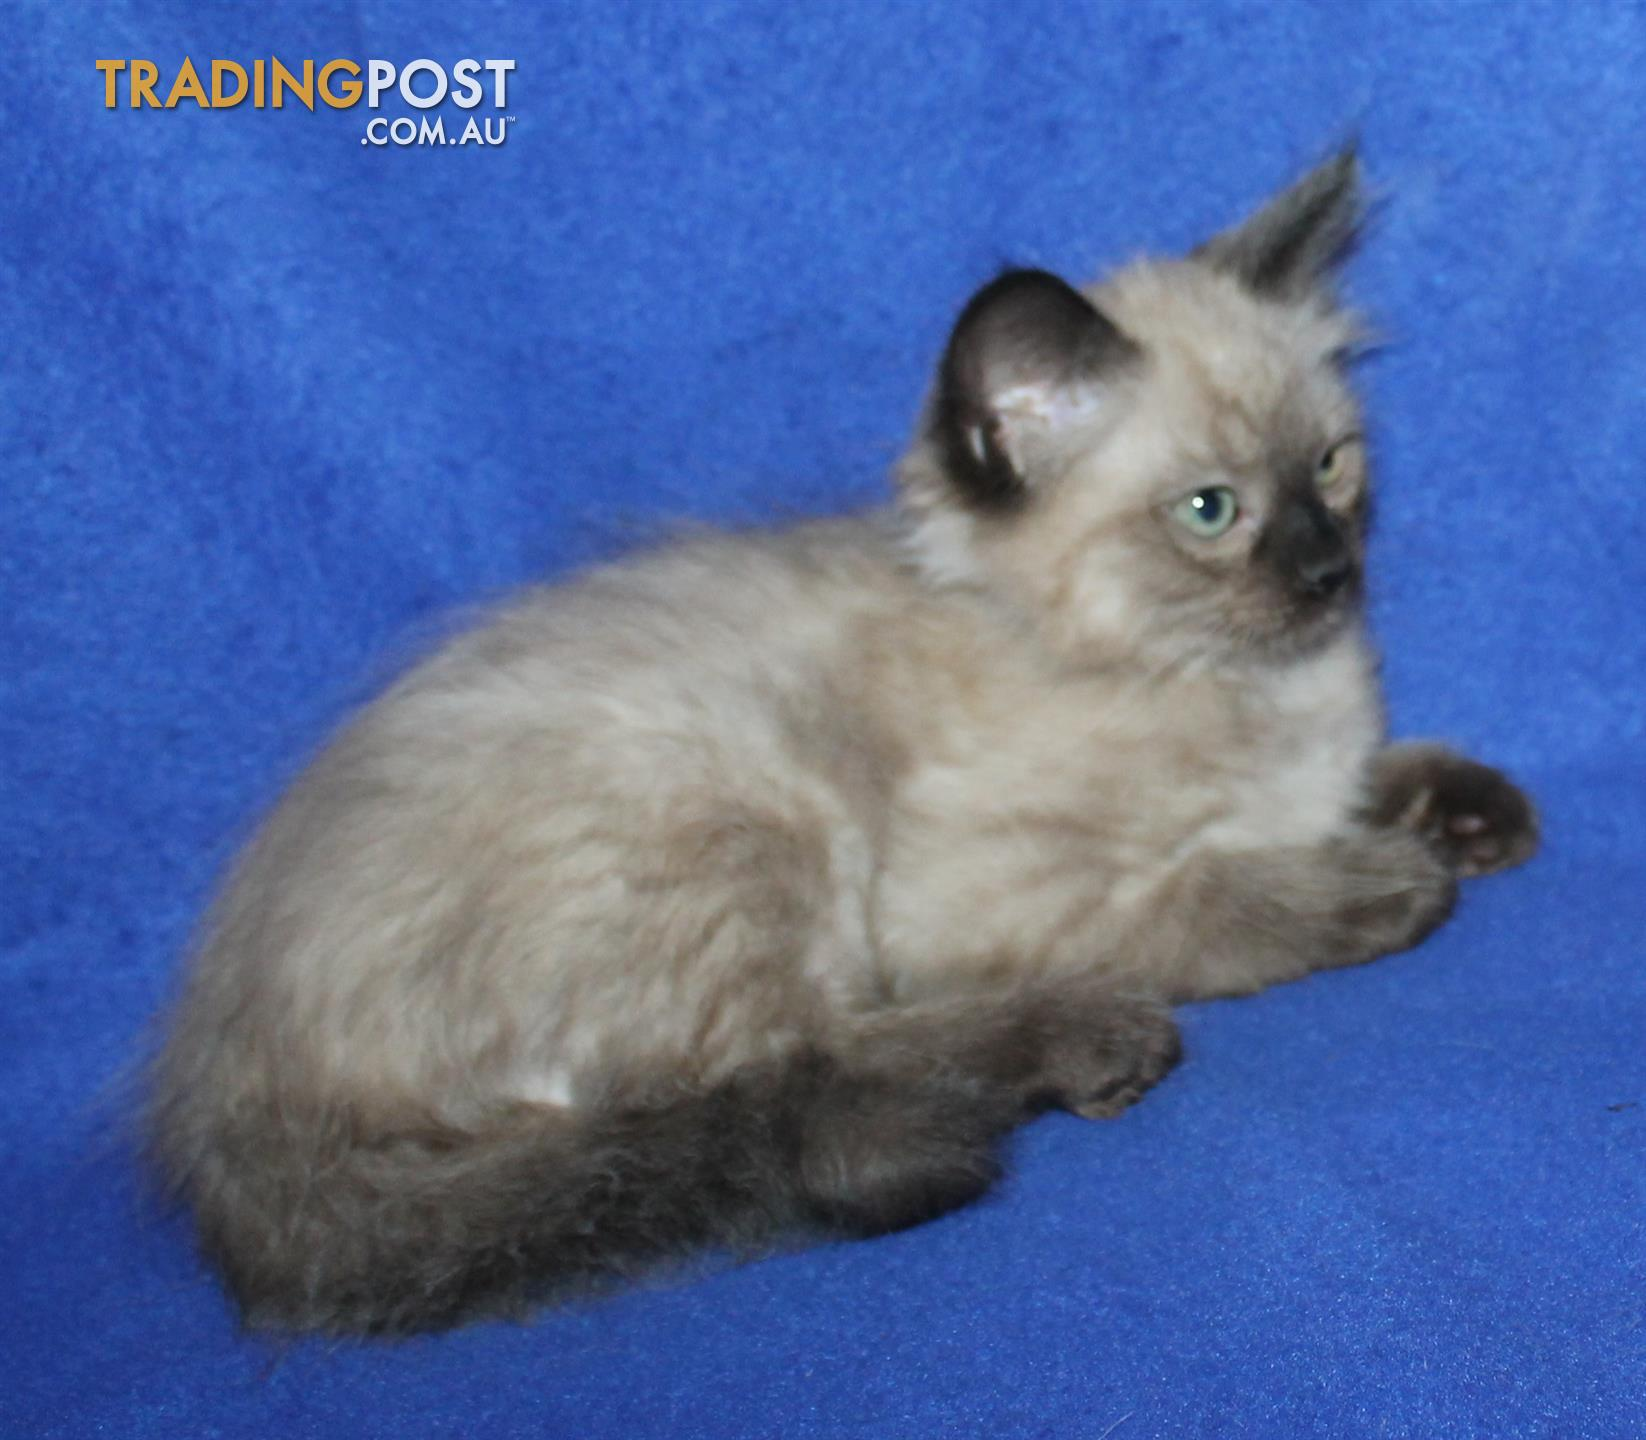 Purebred registered mink Ragdoll kittens for sale in Lithgow NSW ...